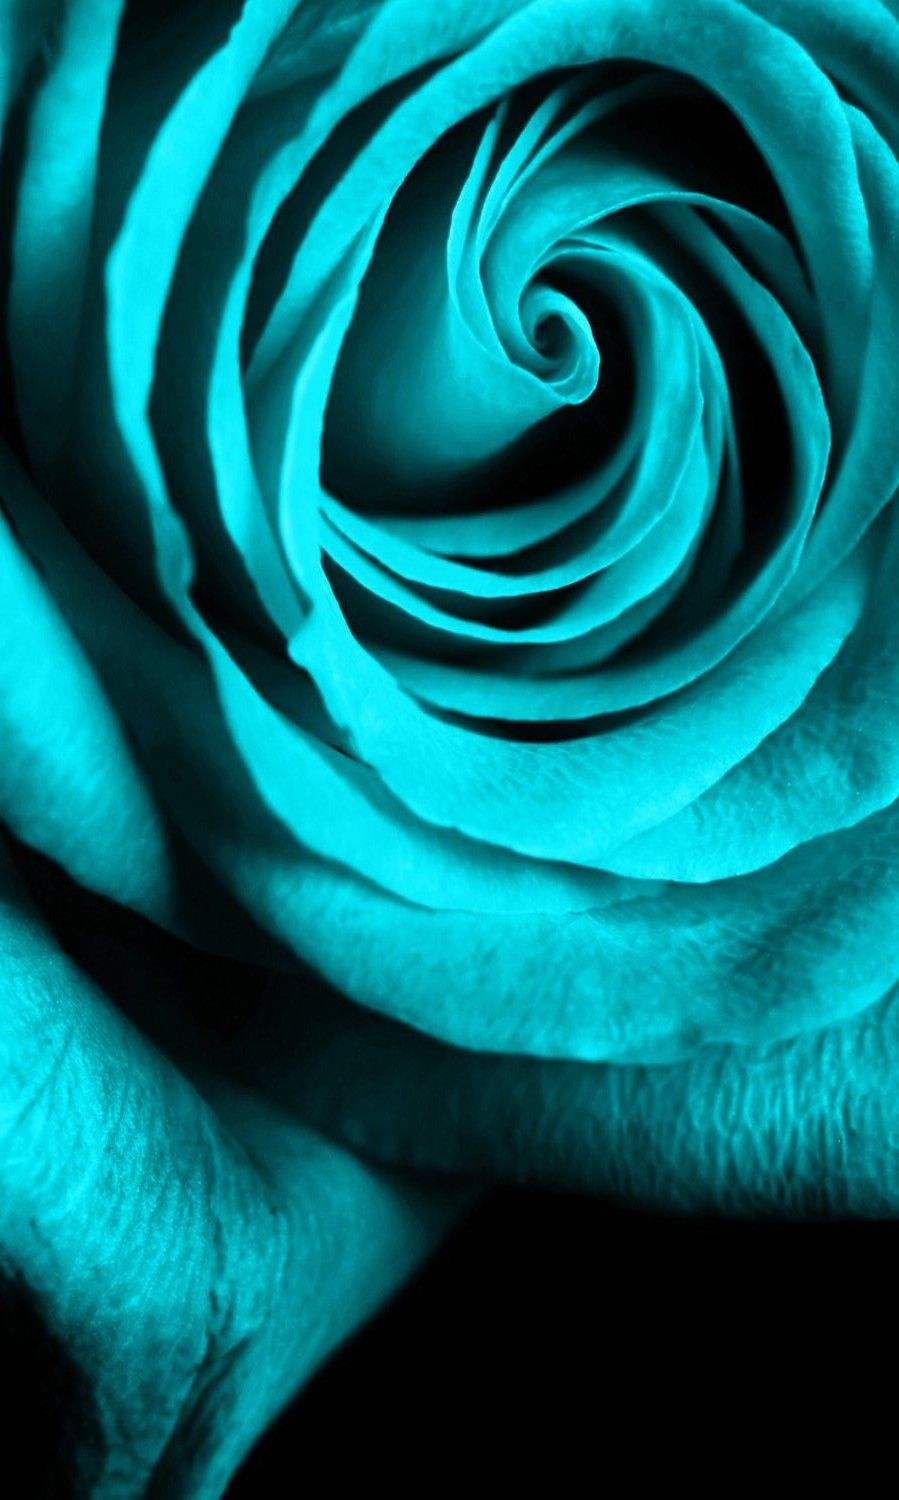 ROSES  teal blue beauty   Flowers 4Ever   Pinterest   Turquoise     ROSES  teal blue beauty